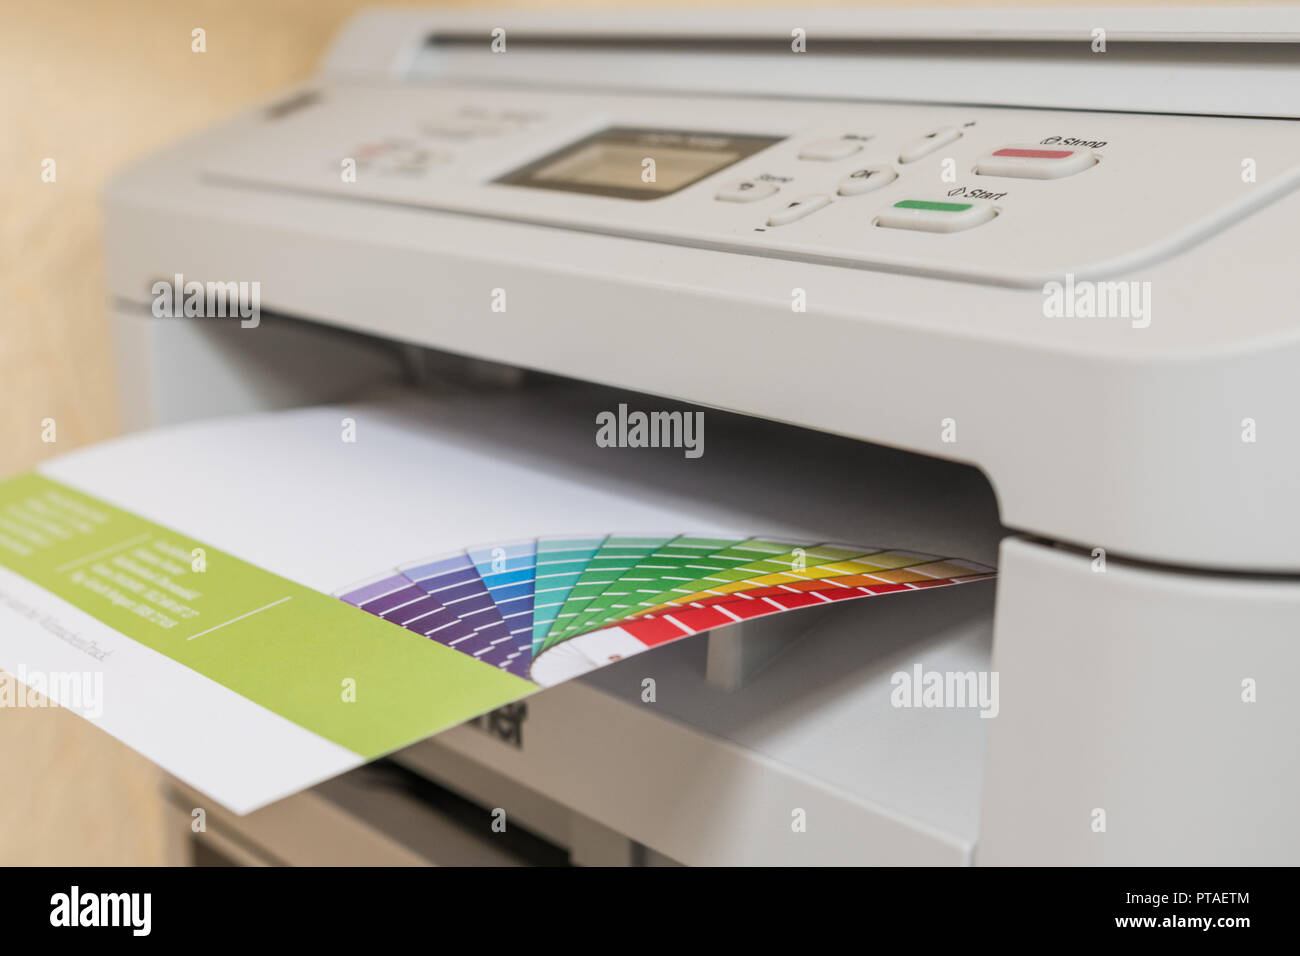 Printed sheet of paper comes out of printer Stock Photo